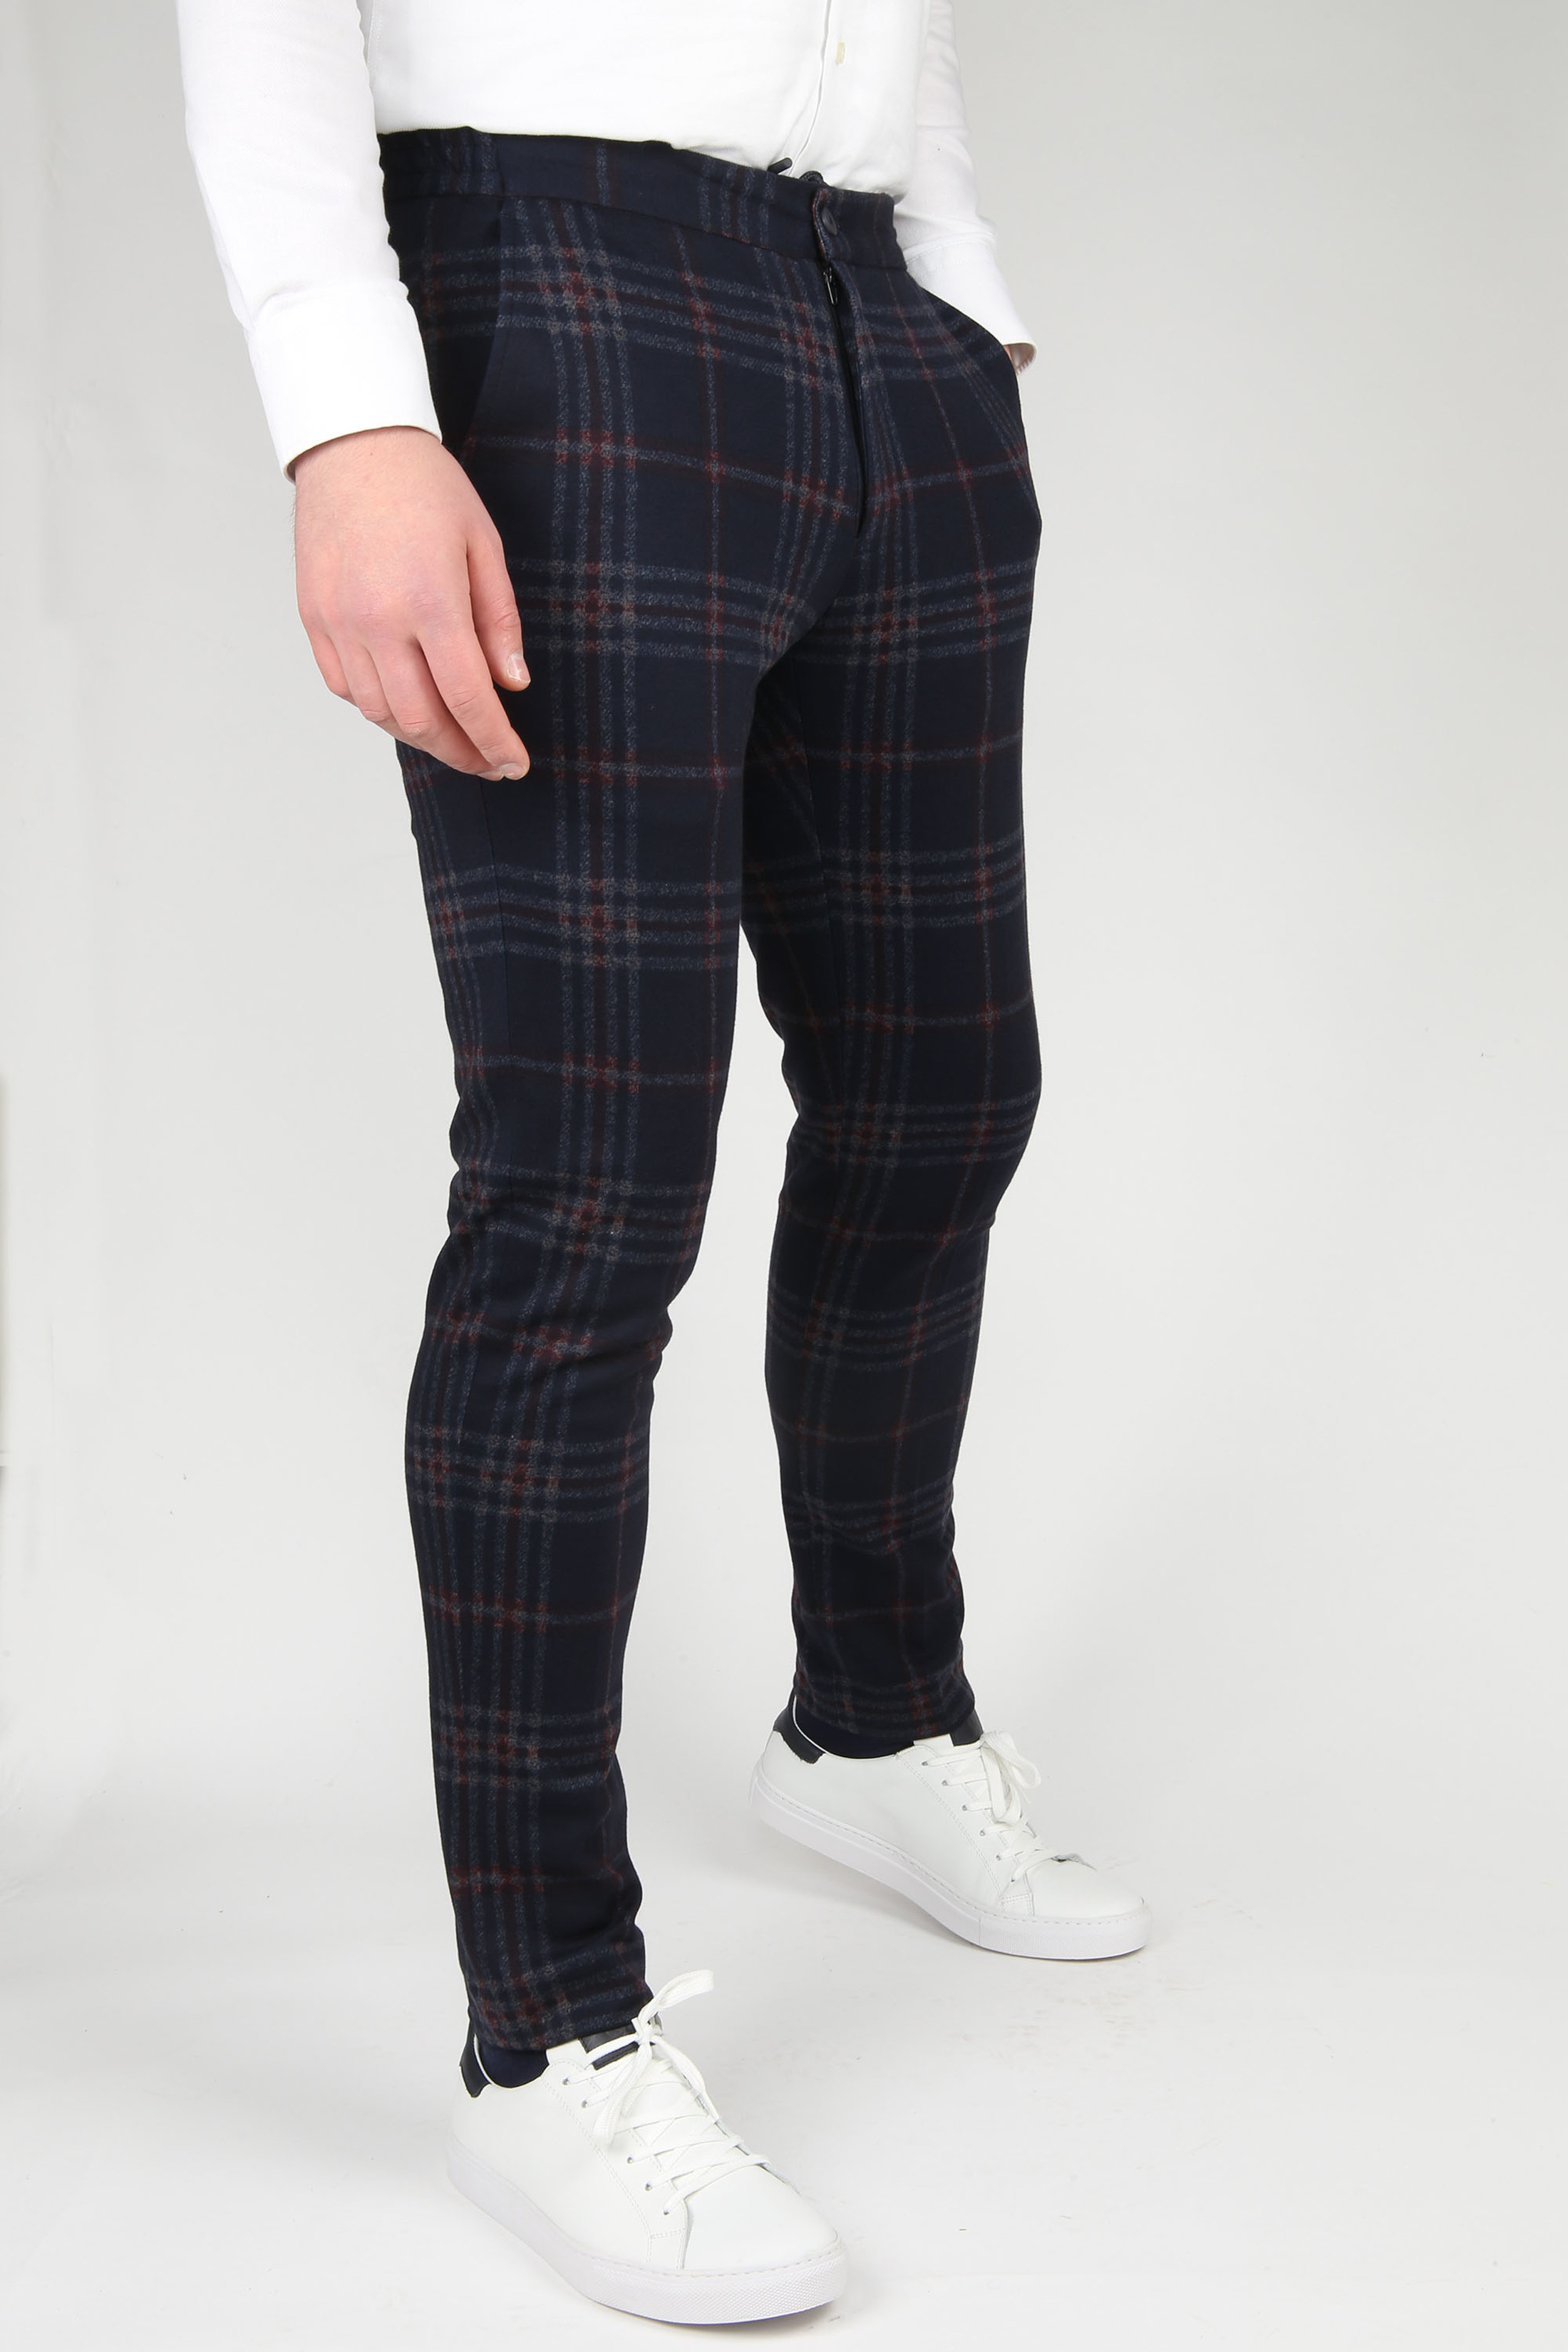 Suitable Respect Jog Pantalon Ruiten Navy